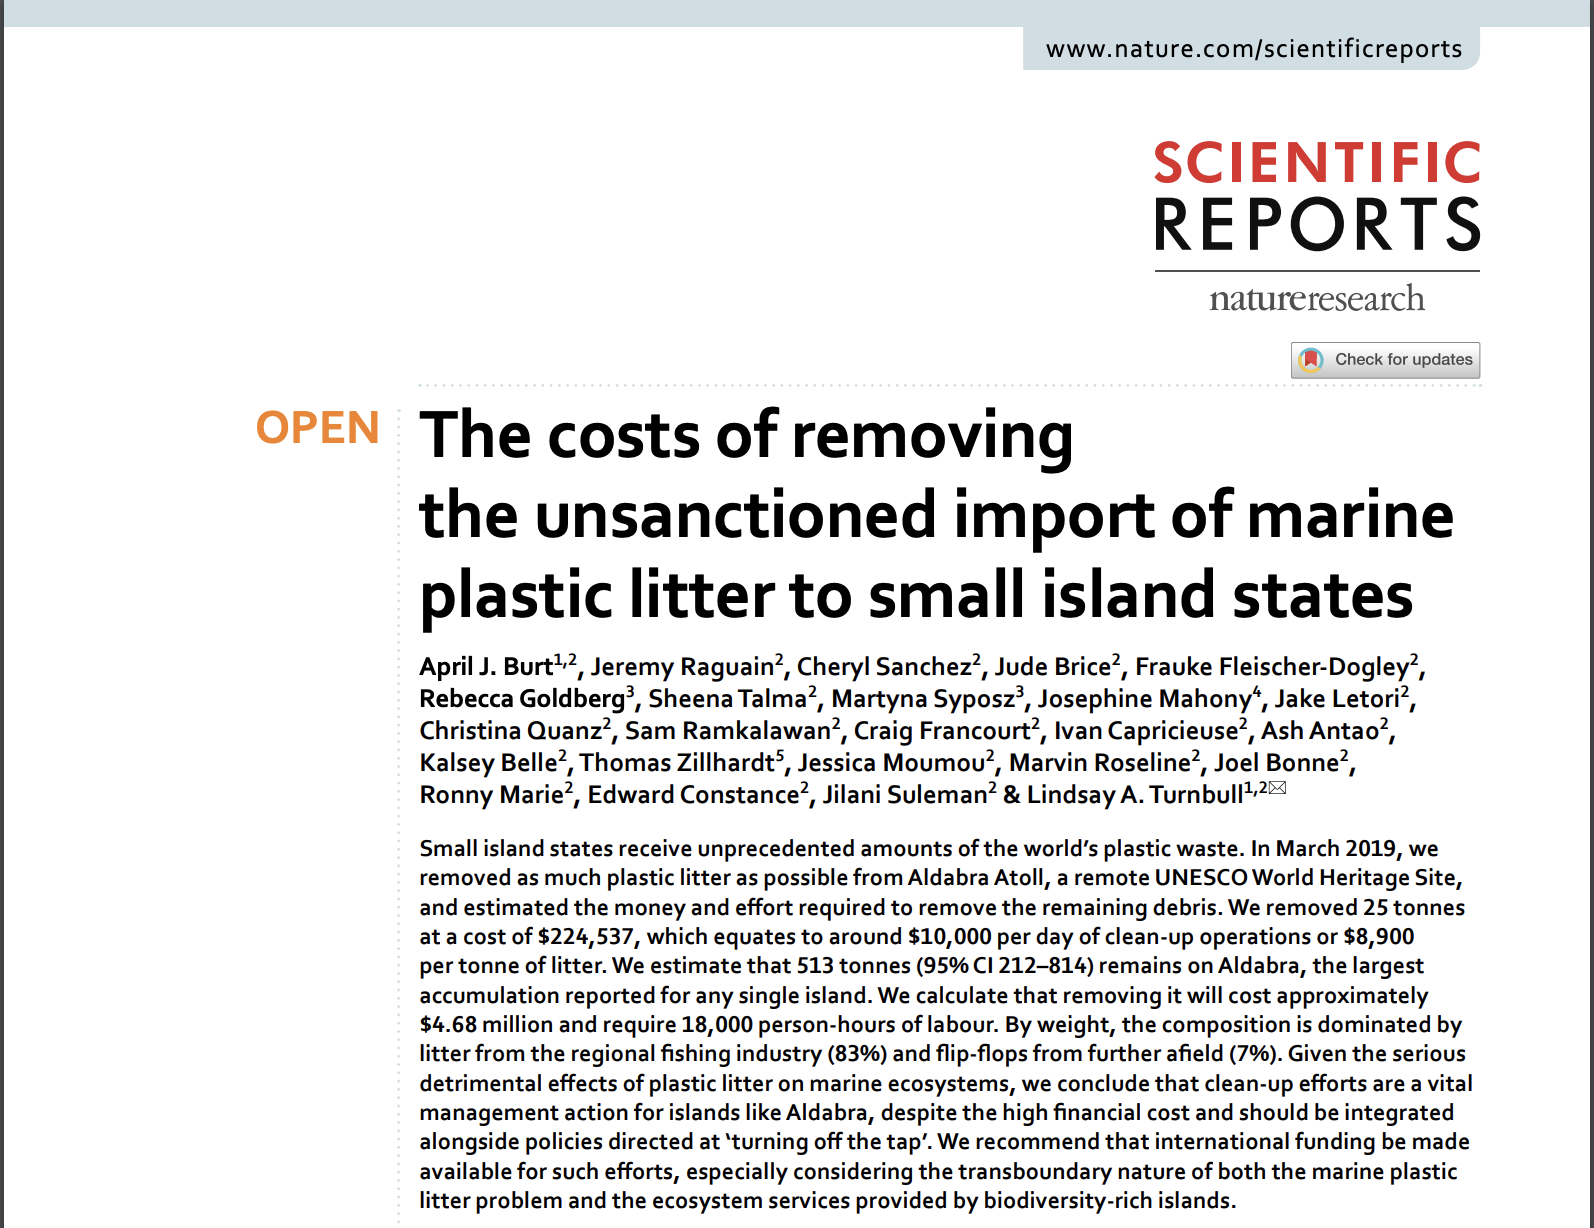 The Costs Of Removing The Unsanctioned Import Of Marine Plastic Litter To Small Island States